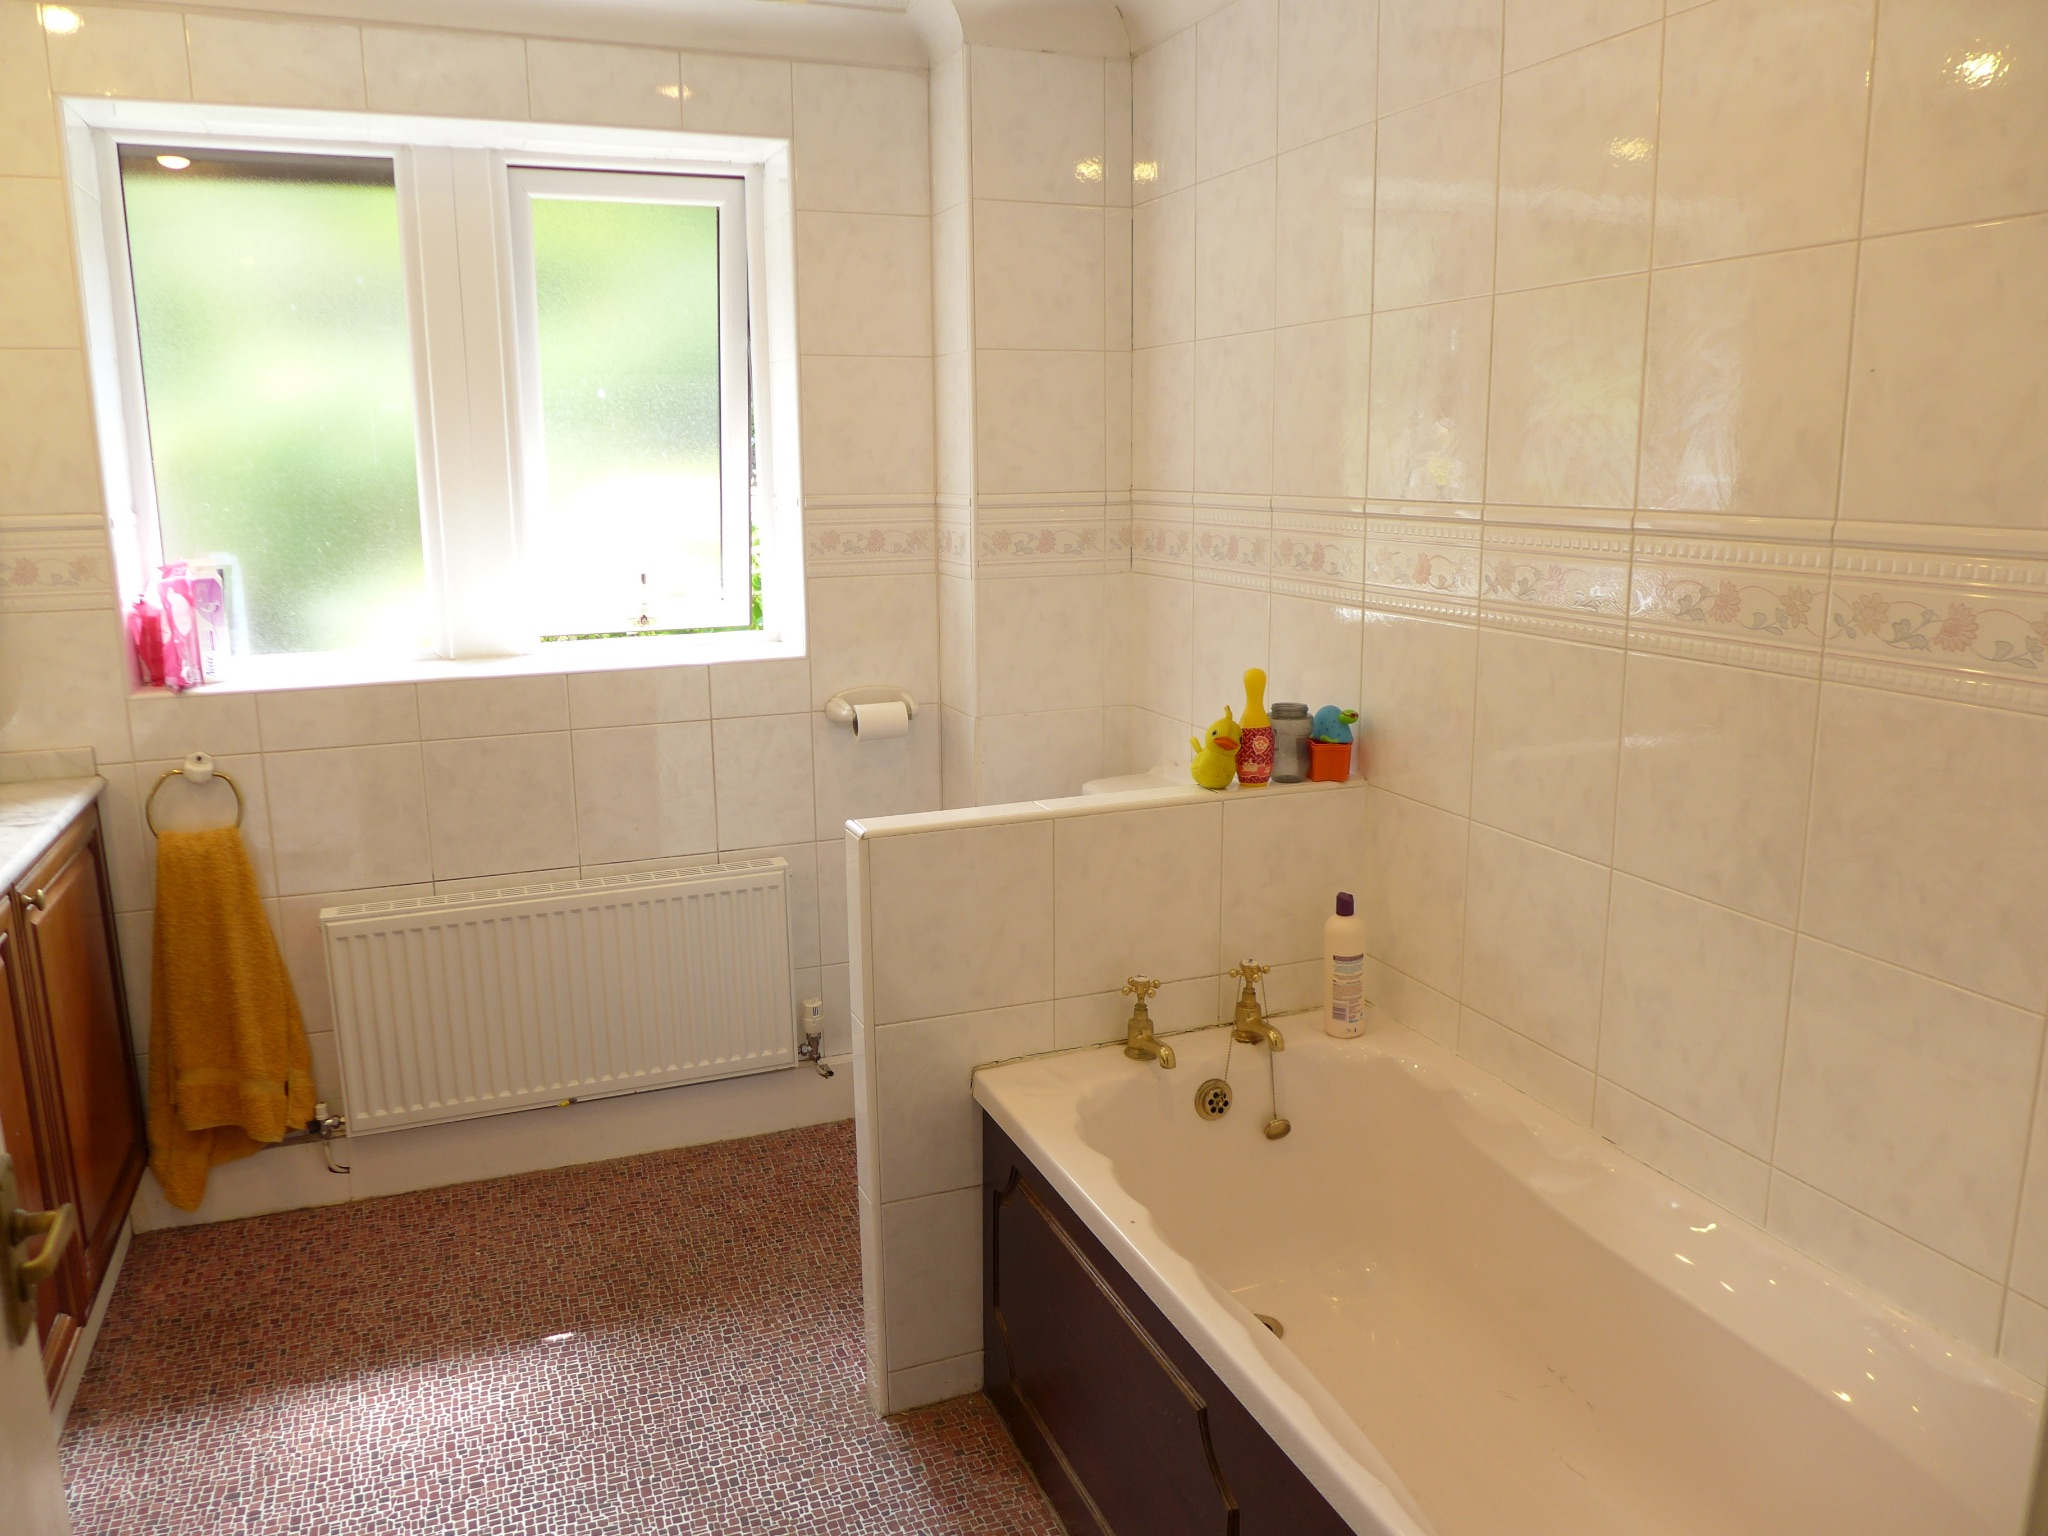 4 bedroom detached house For Sale in Todmorden - Photograph 15.